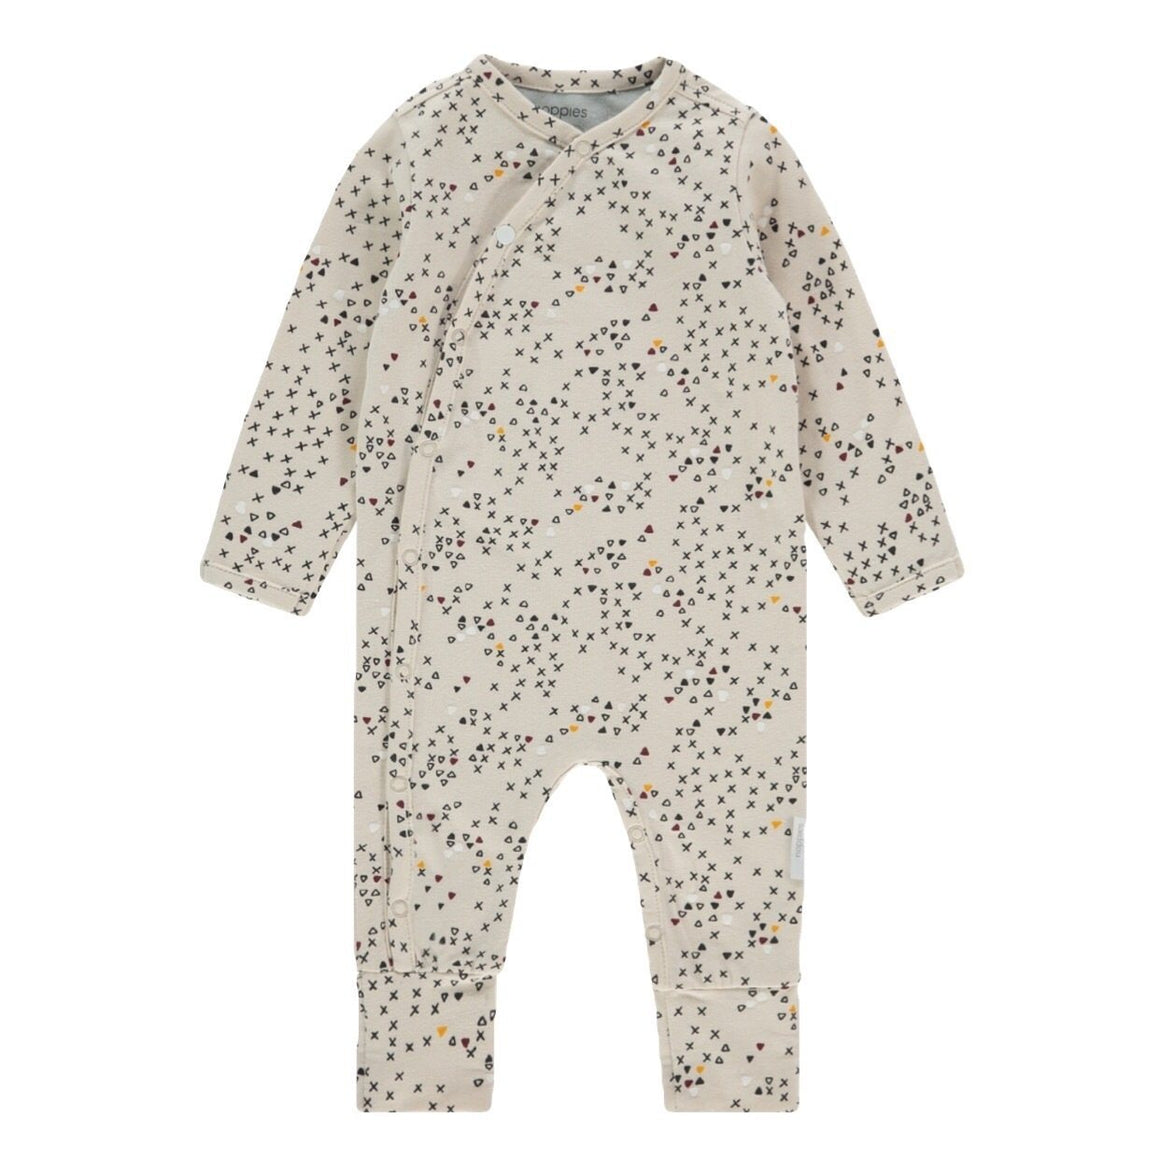 94517 - Noppies - Quaisumah Unisex Baby Organic Playsuit - Moonbeam Sleeper Noppies